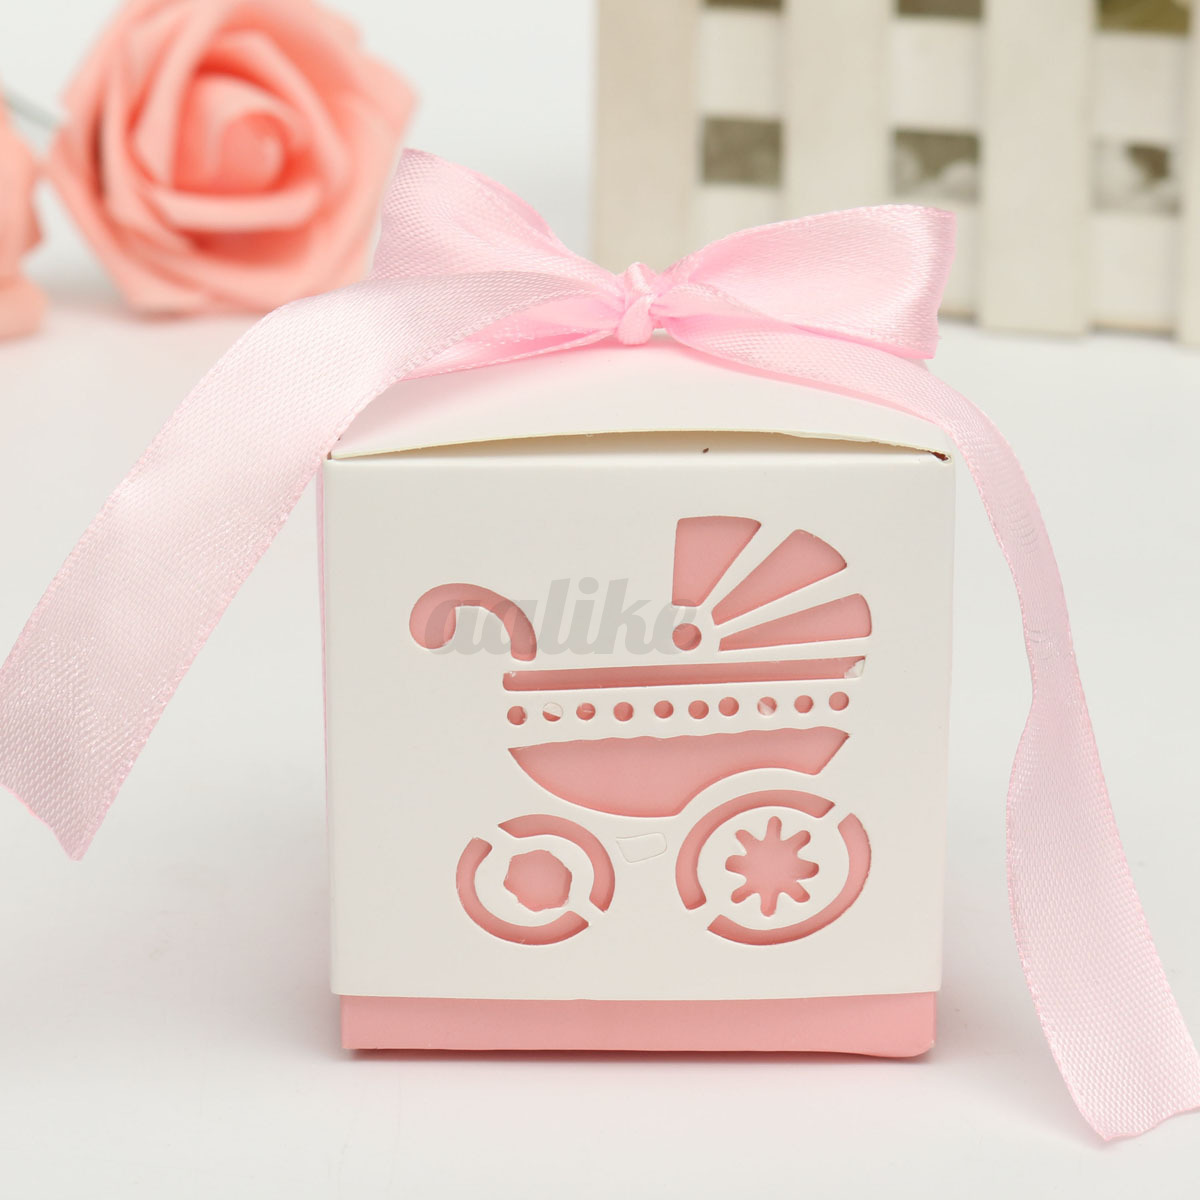 Baby shower favor boxes australia : Laser cut carriage gift candy bomboniere boxes wedding